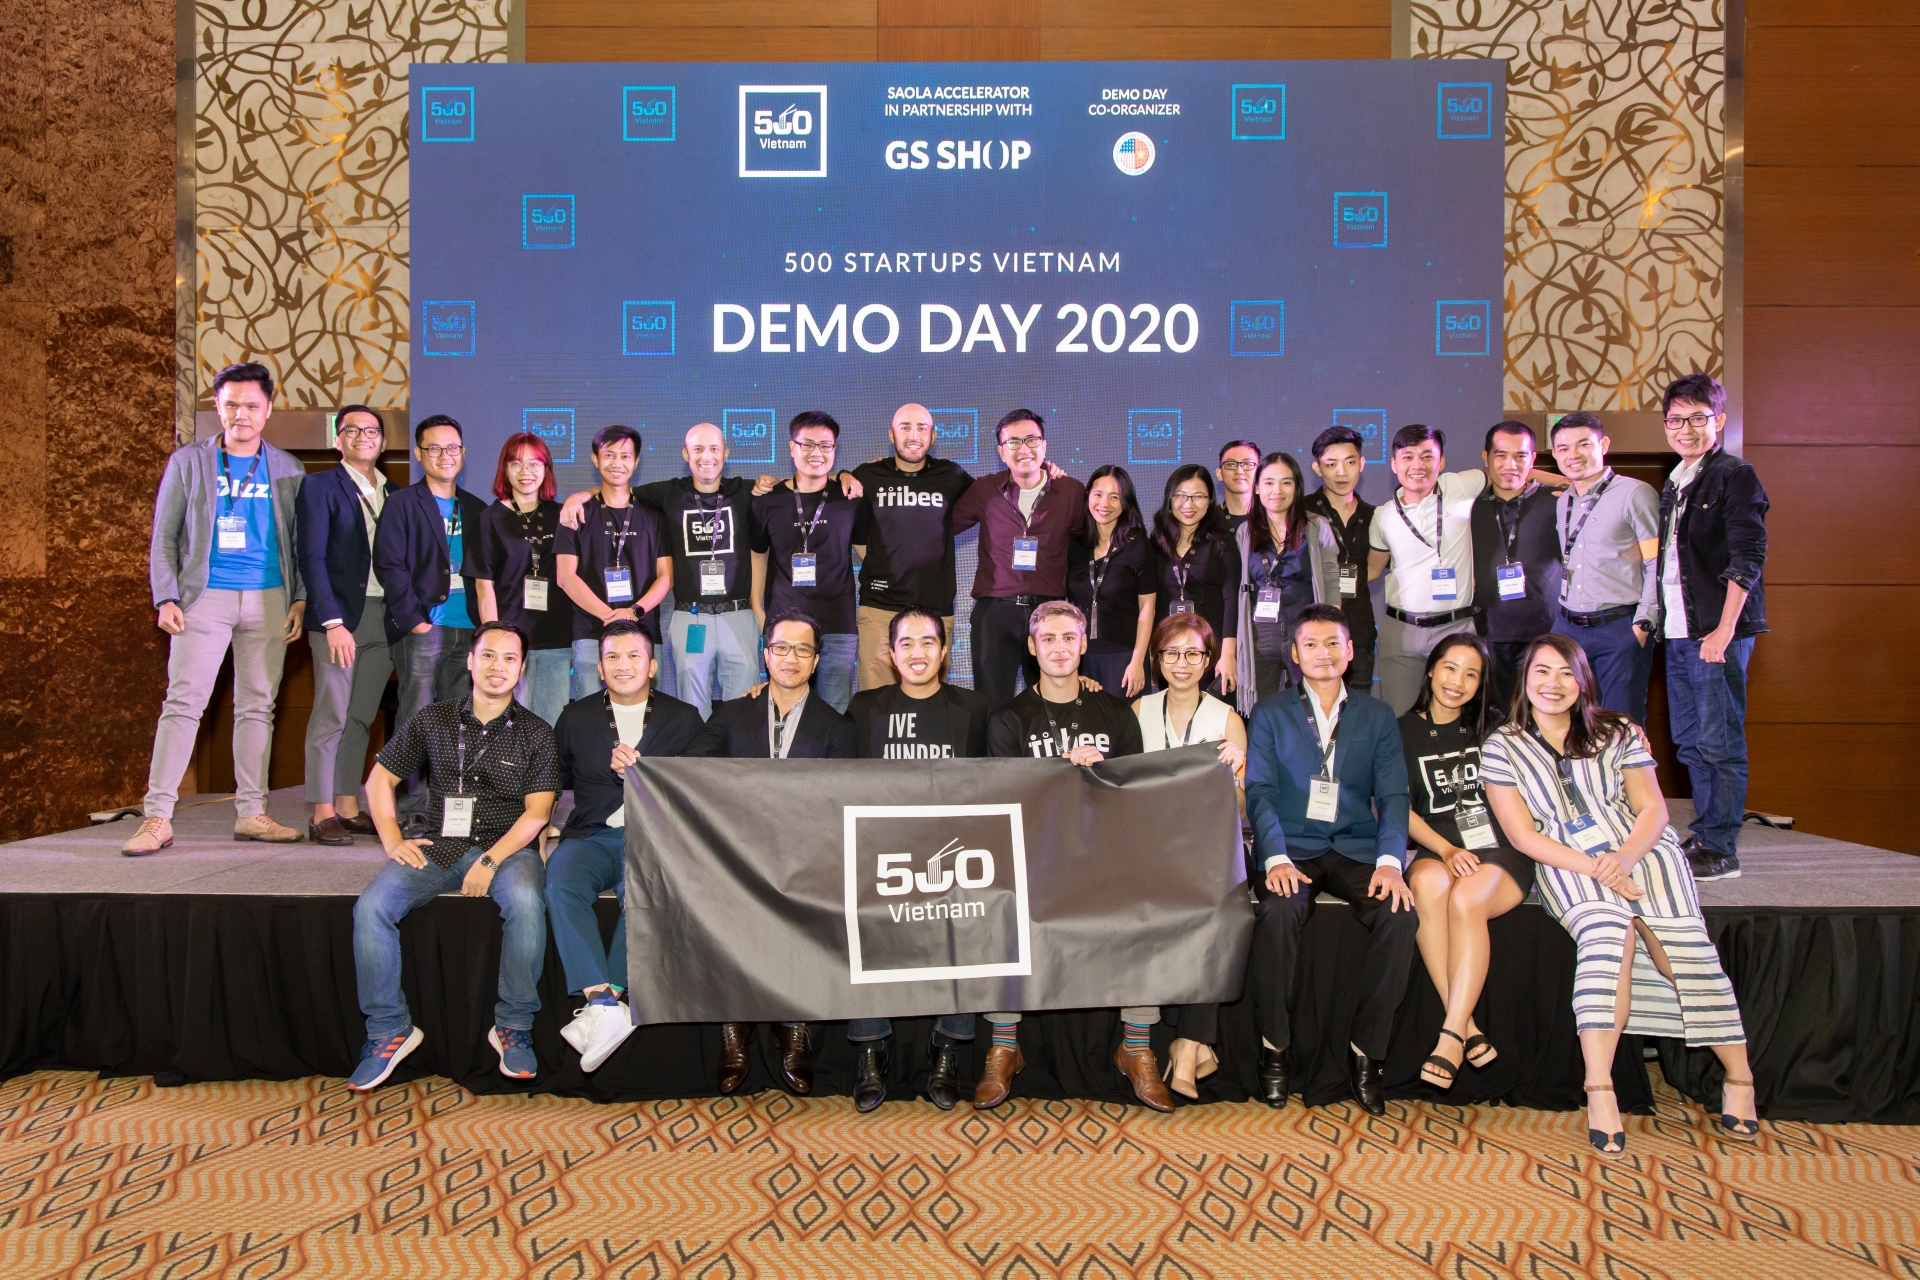 500 Startups Vietnam has made 15 new investments in 2020